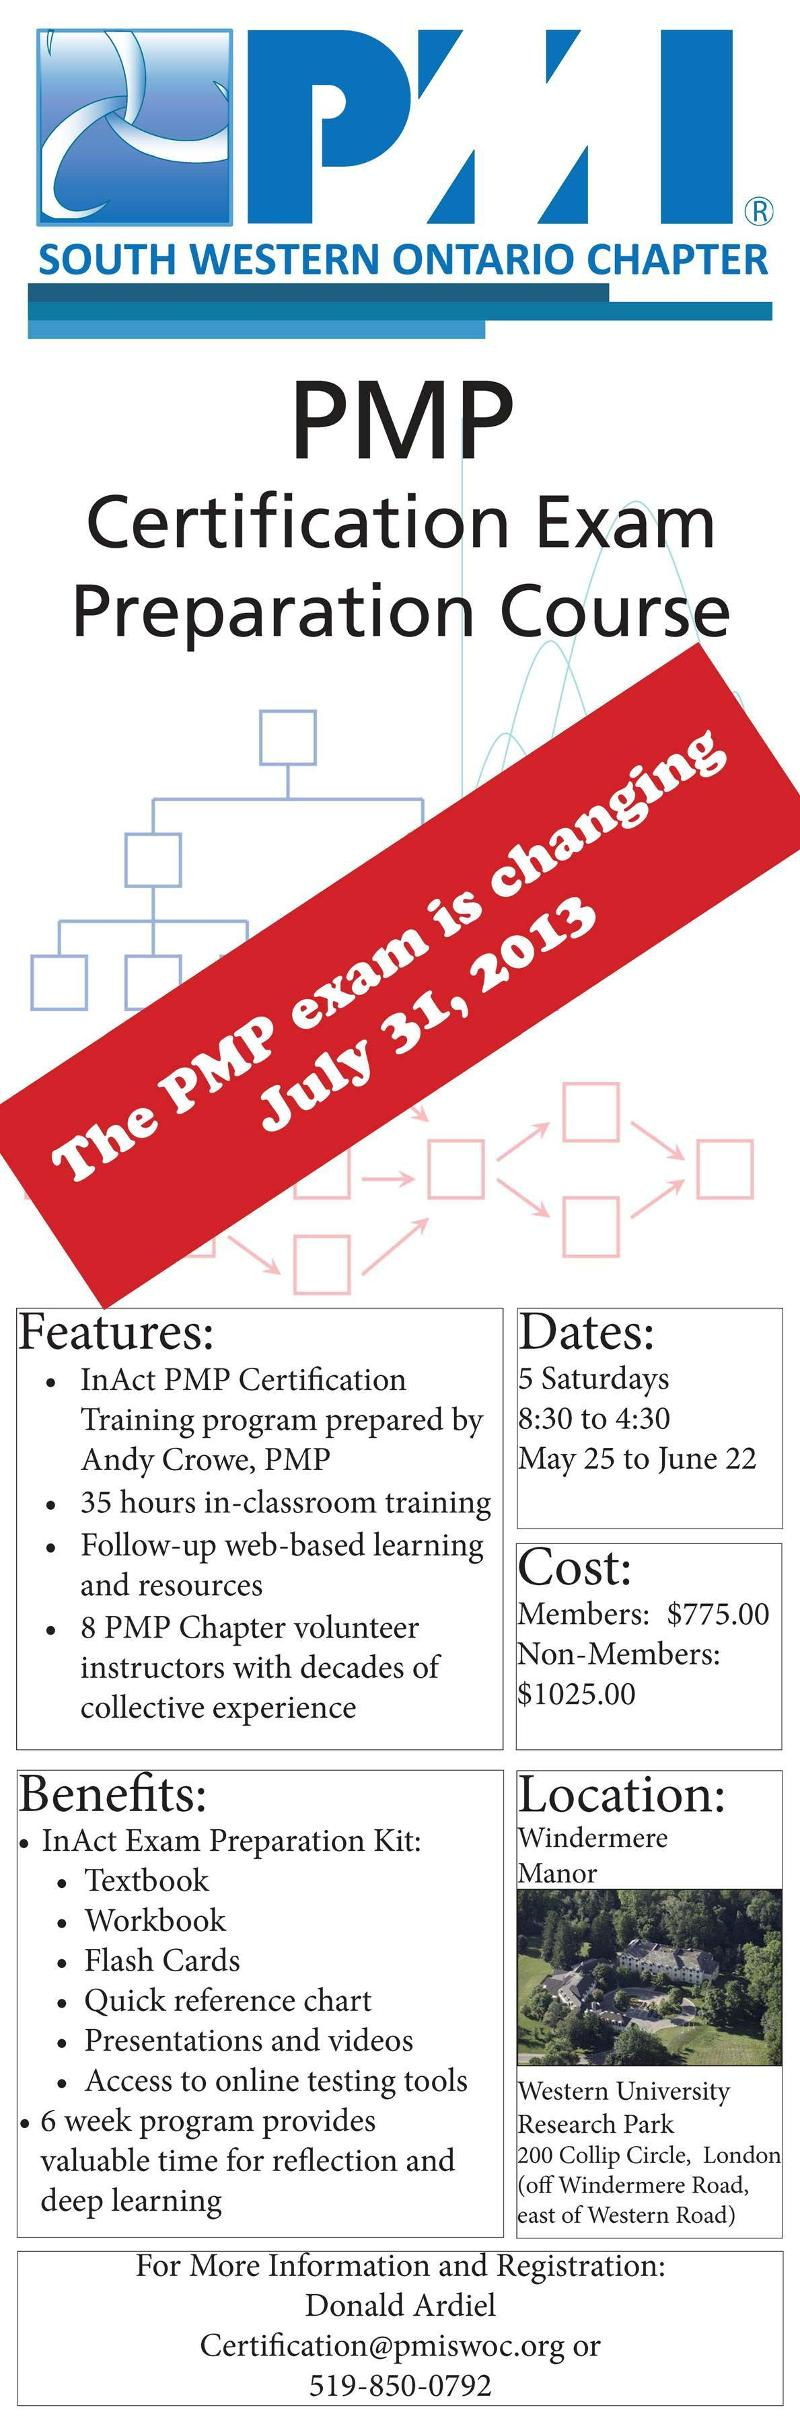 Pmi Swocs Pmp Certification Exam Prep Course Starts May 25 2013